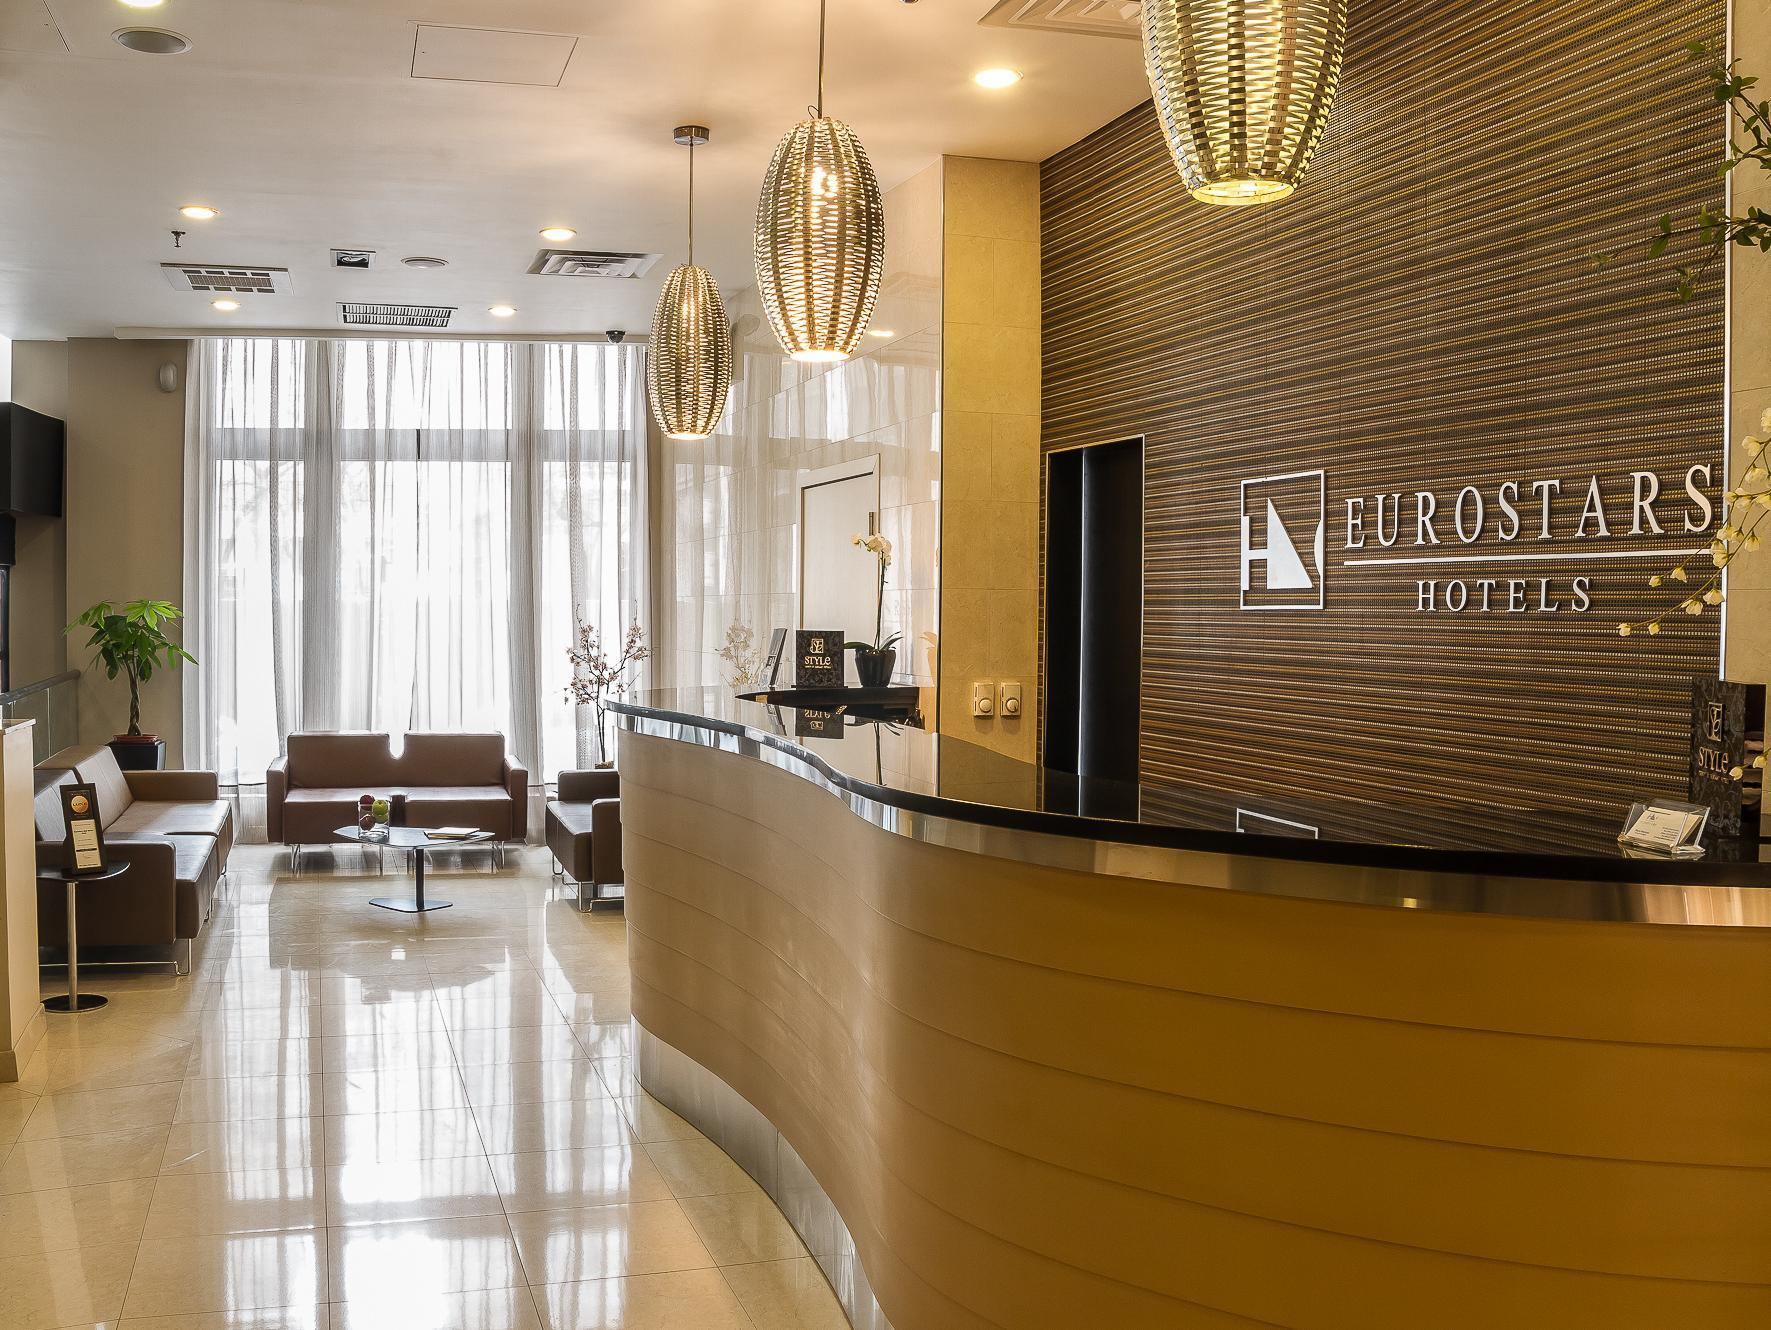 Eurostars Hotel Wall Street - Hotel and accommodation in Usa in New York (NY)